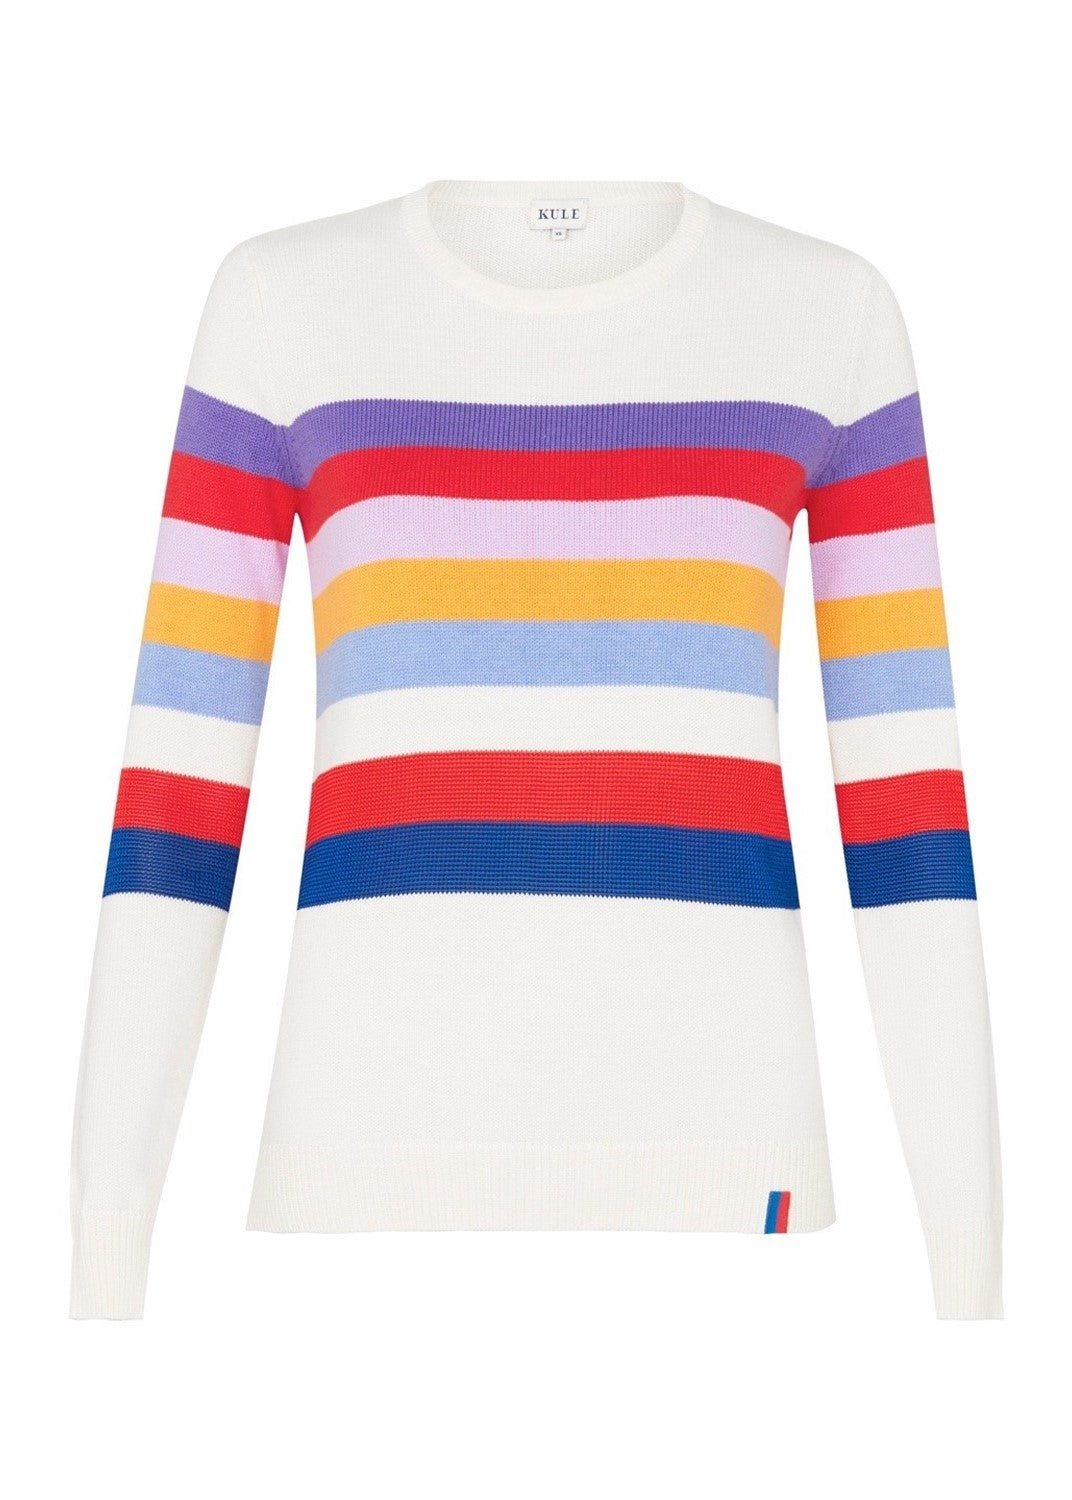 Kule The day trip sweater in cream multi stripes